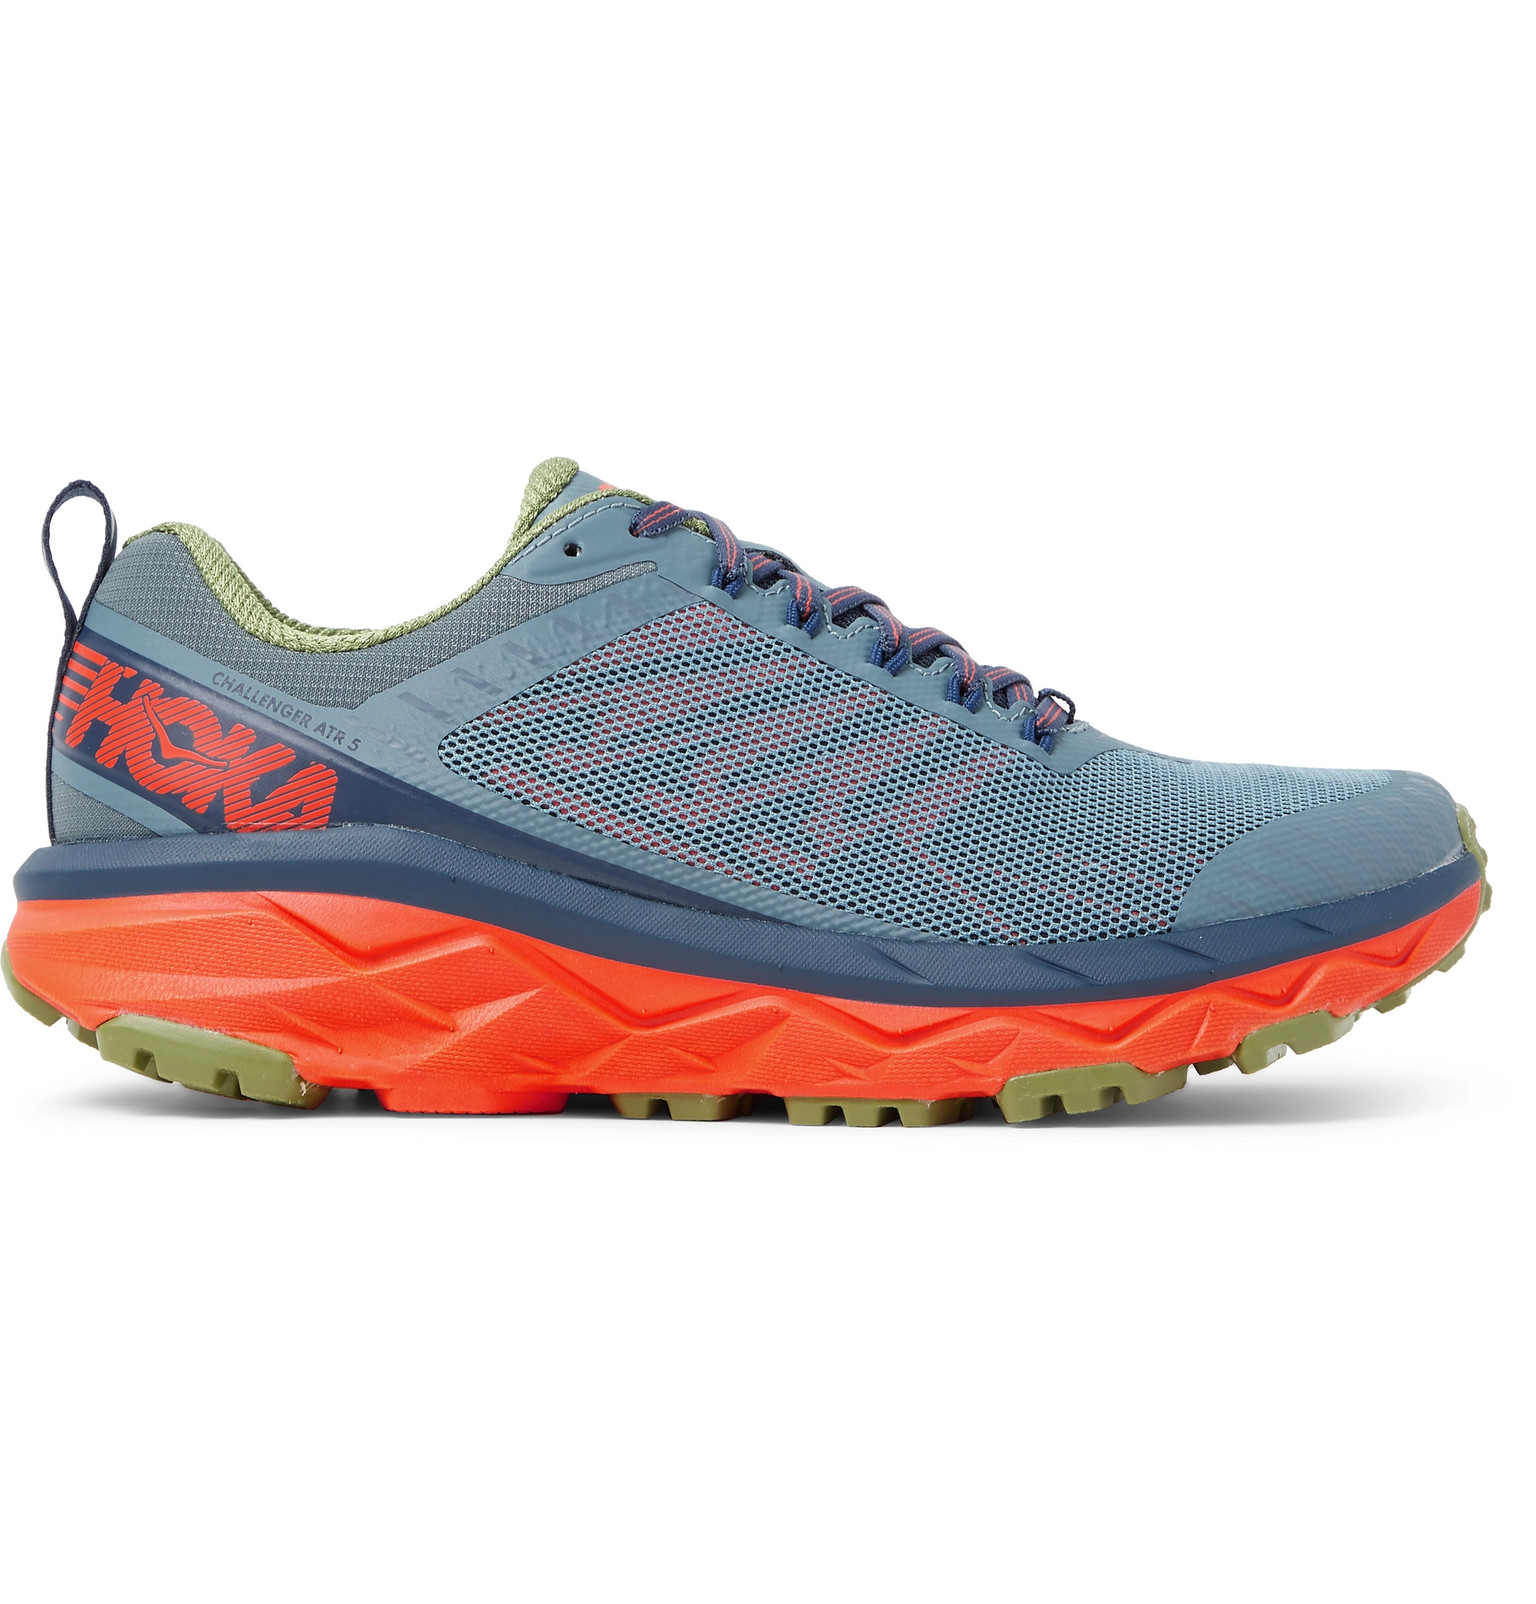 ce0a7002a Hoka One One - Challenger ATR 5 Rubber-Trimmed Mesh Trail Running Sneakers